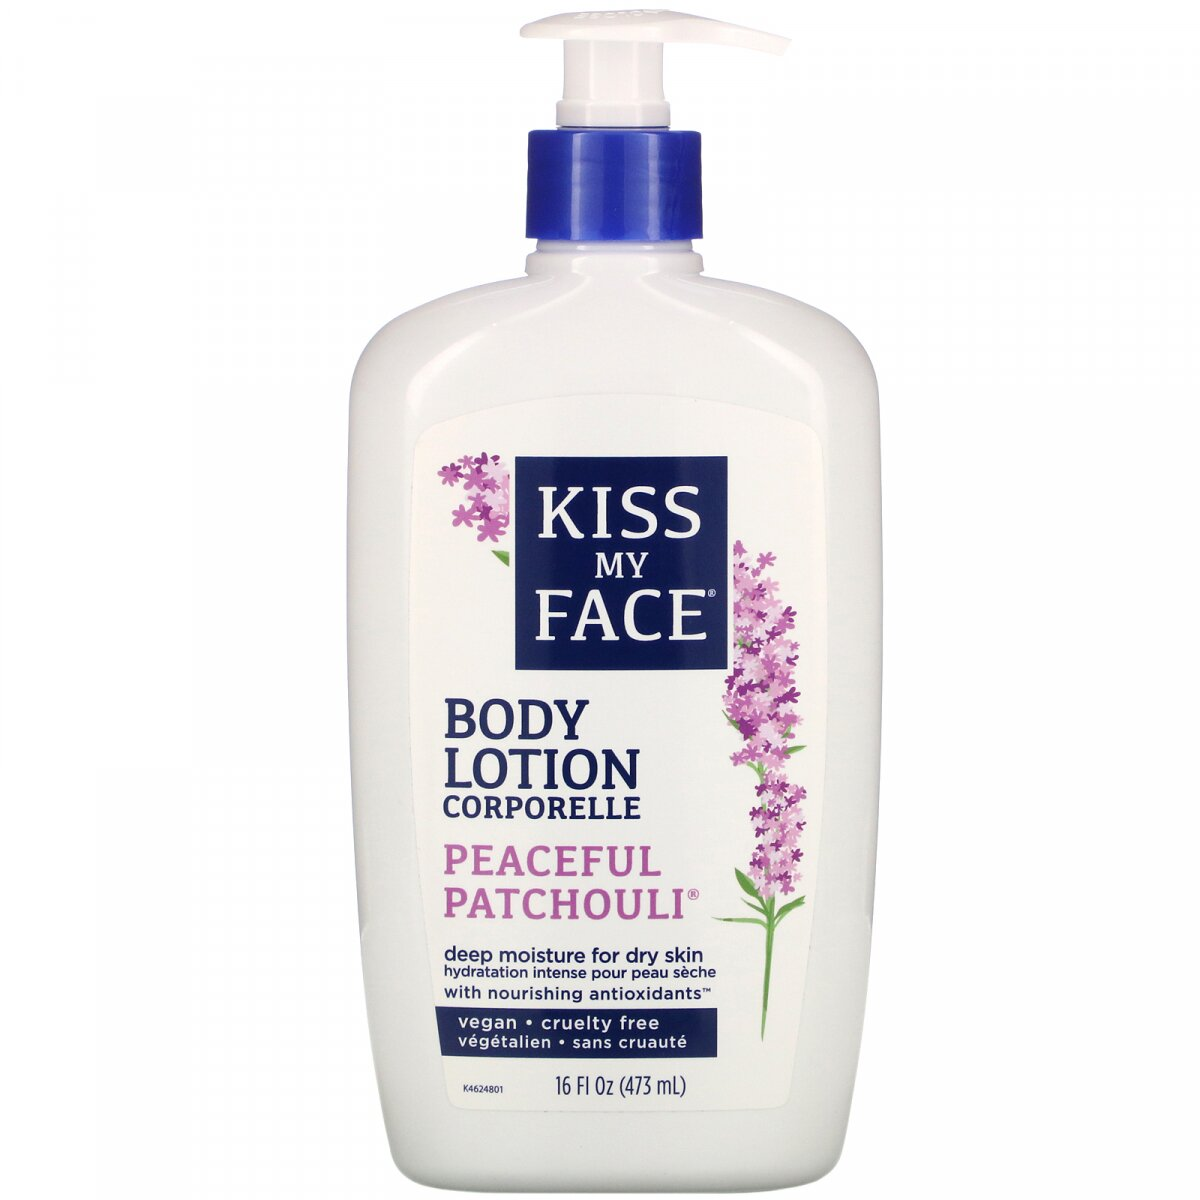 Лосьон для тела Peaceful Patchouli, Peaceful Patchouli Body Lotion, Kiss My Face, 473 мл